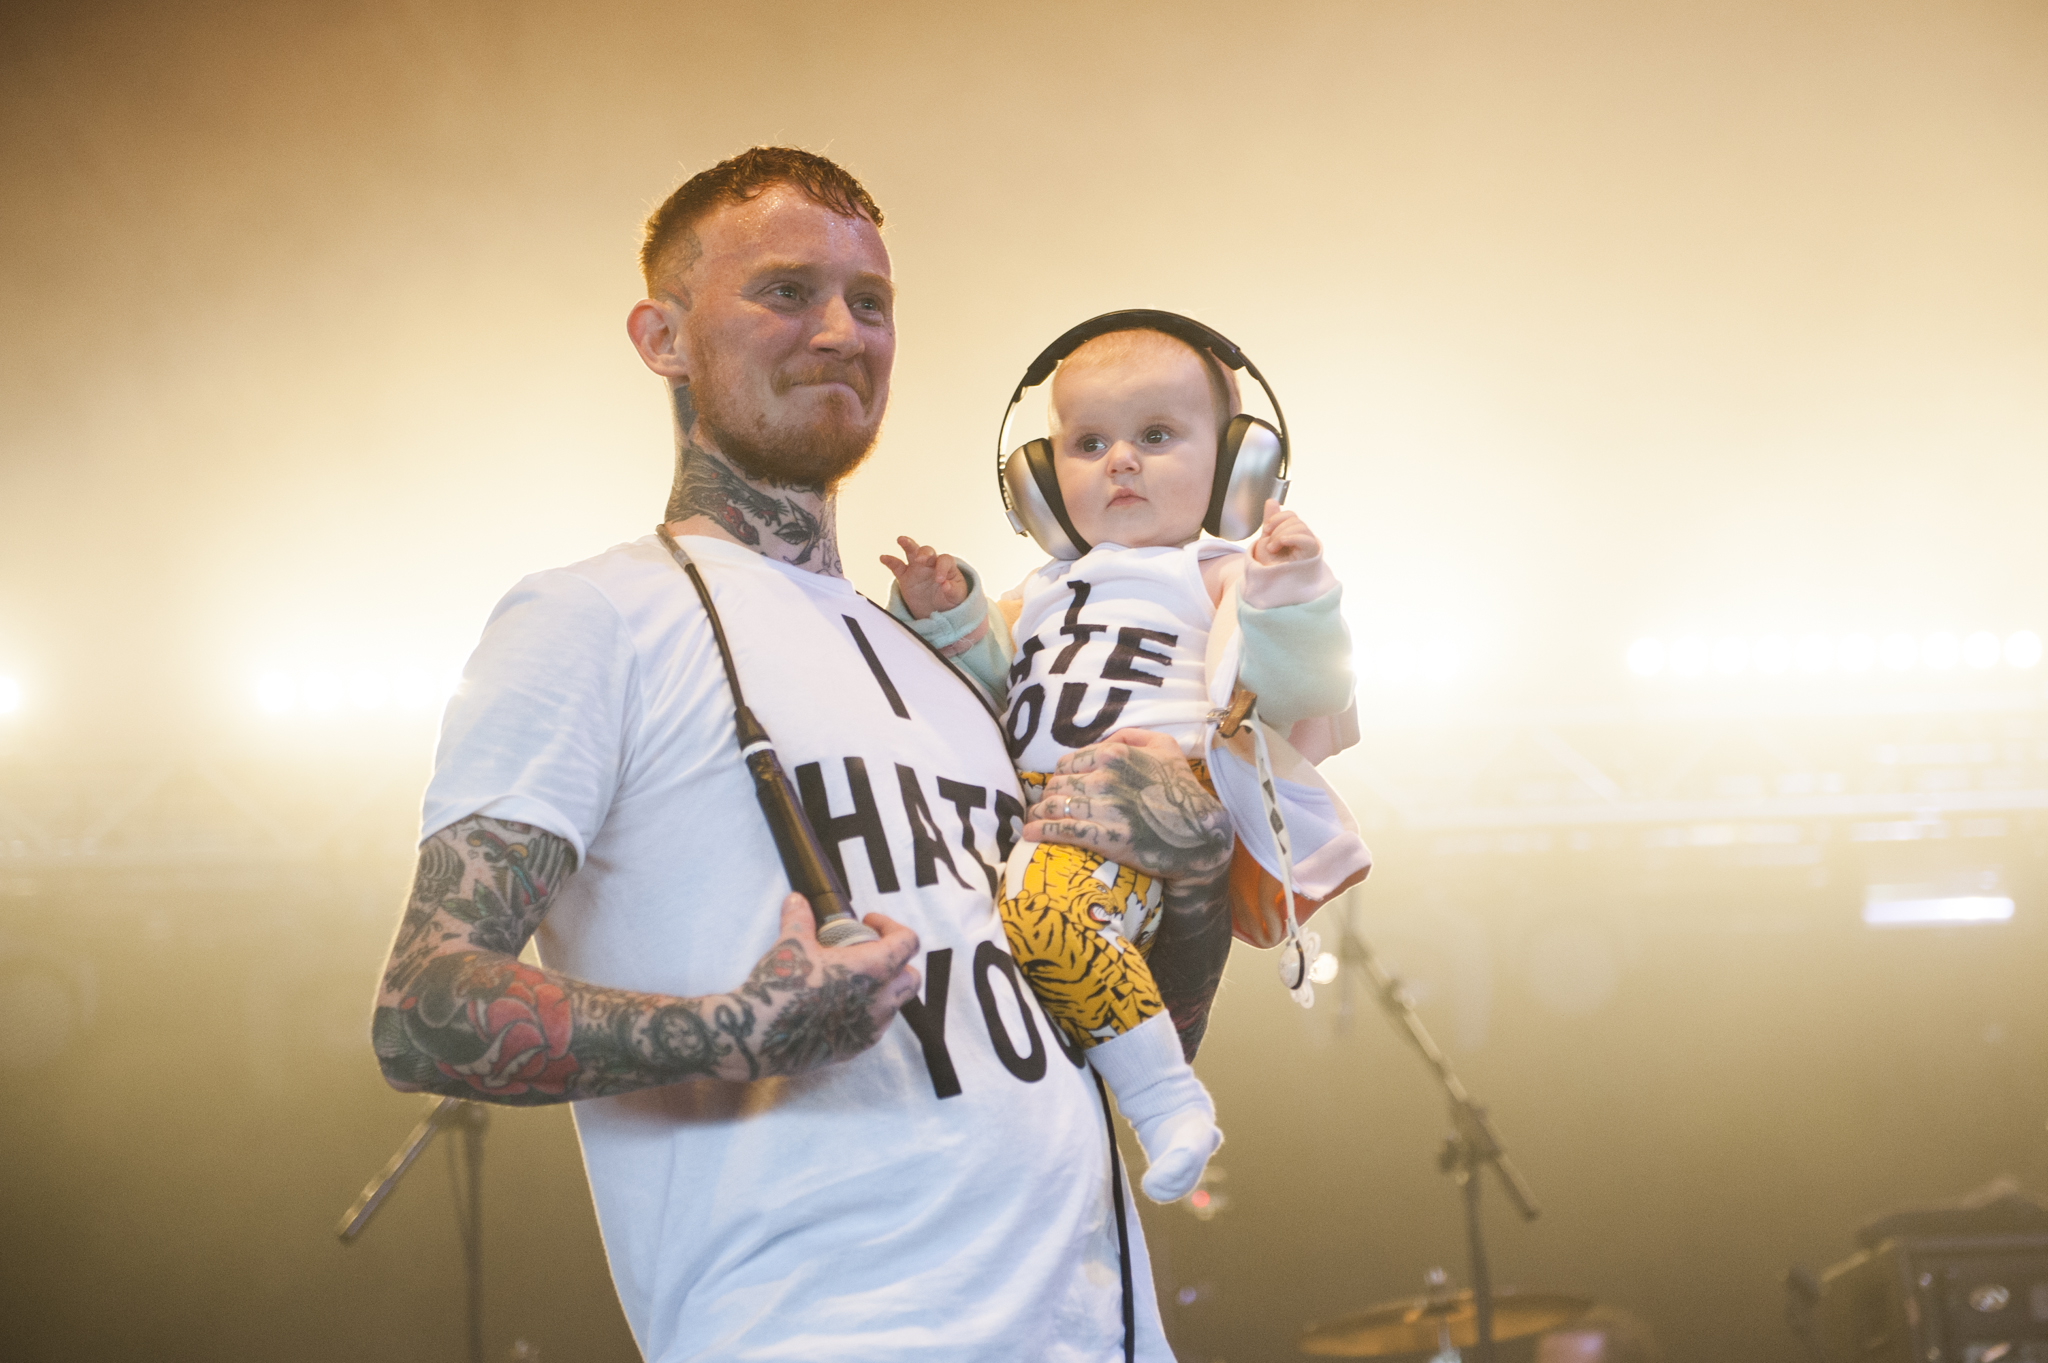 Frank Carter & The Rattlesnakes make it a family affair at Reading 2015